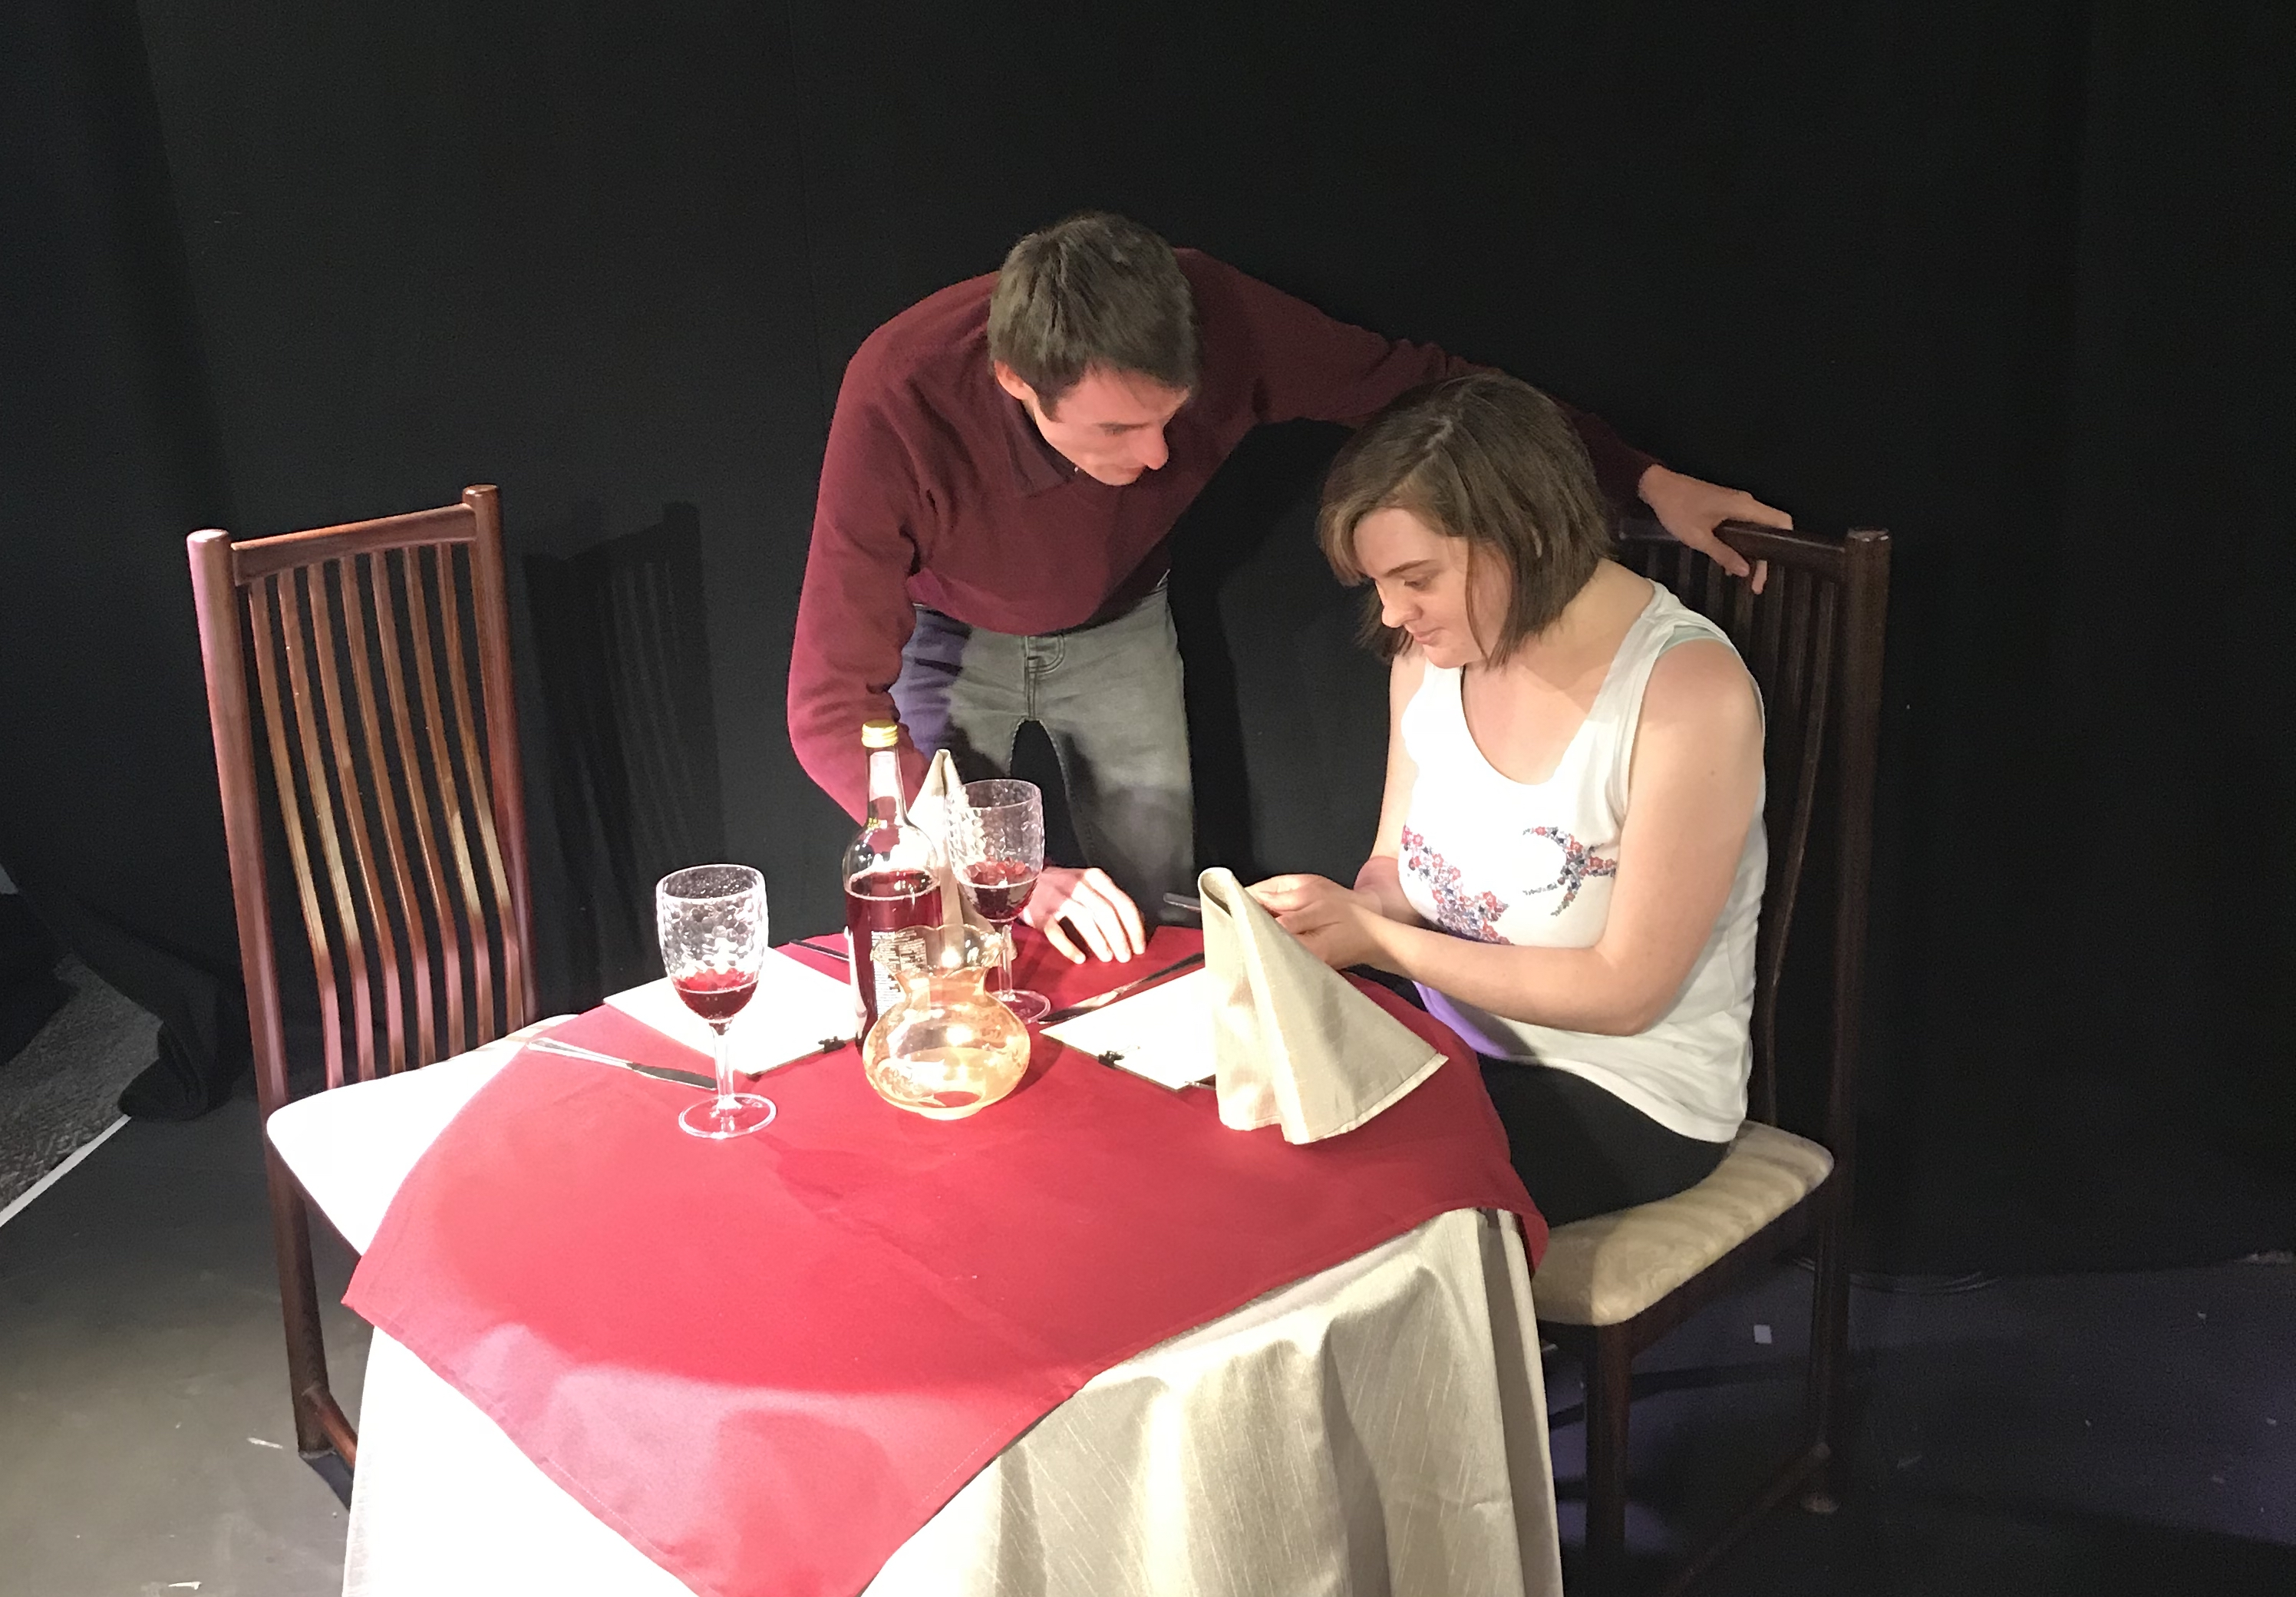 18_08 First Dates 8